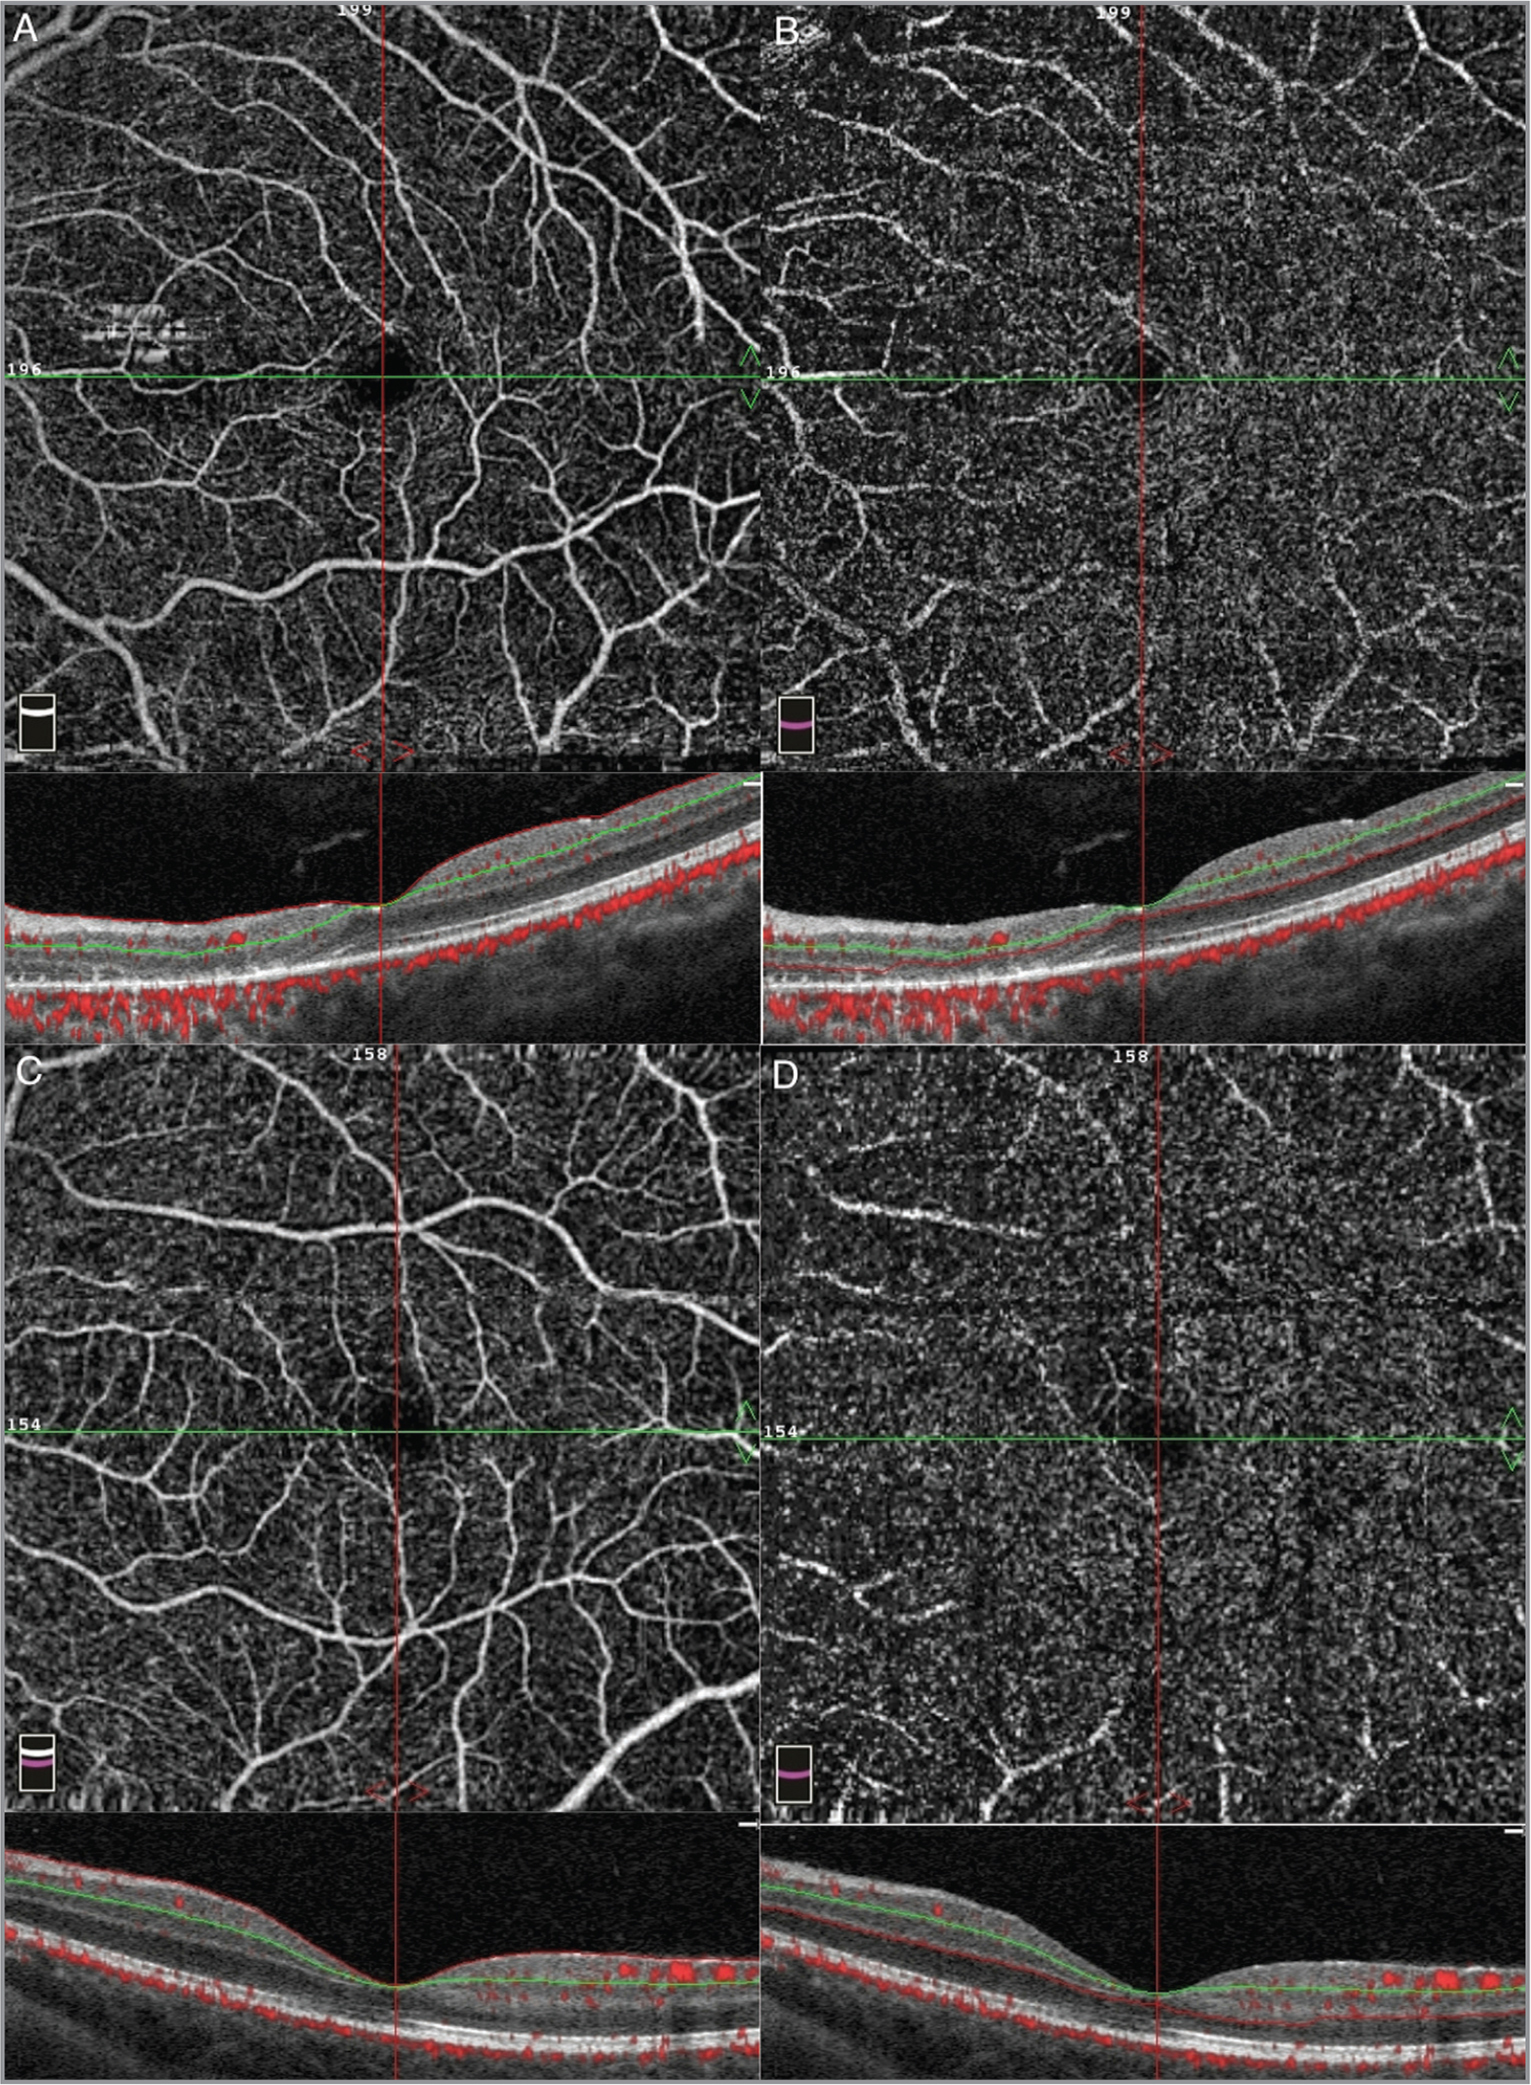 Normal optical coherence tomography angiography of (A) the superficial capillary plexus and (B) deep capillary plexus in Case 1 and (C) superficial capillary plexus and (D) deep capillary plexus in Case 2.